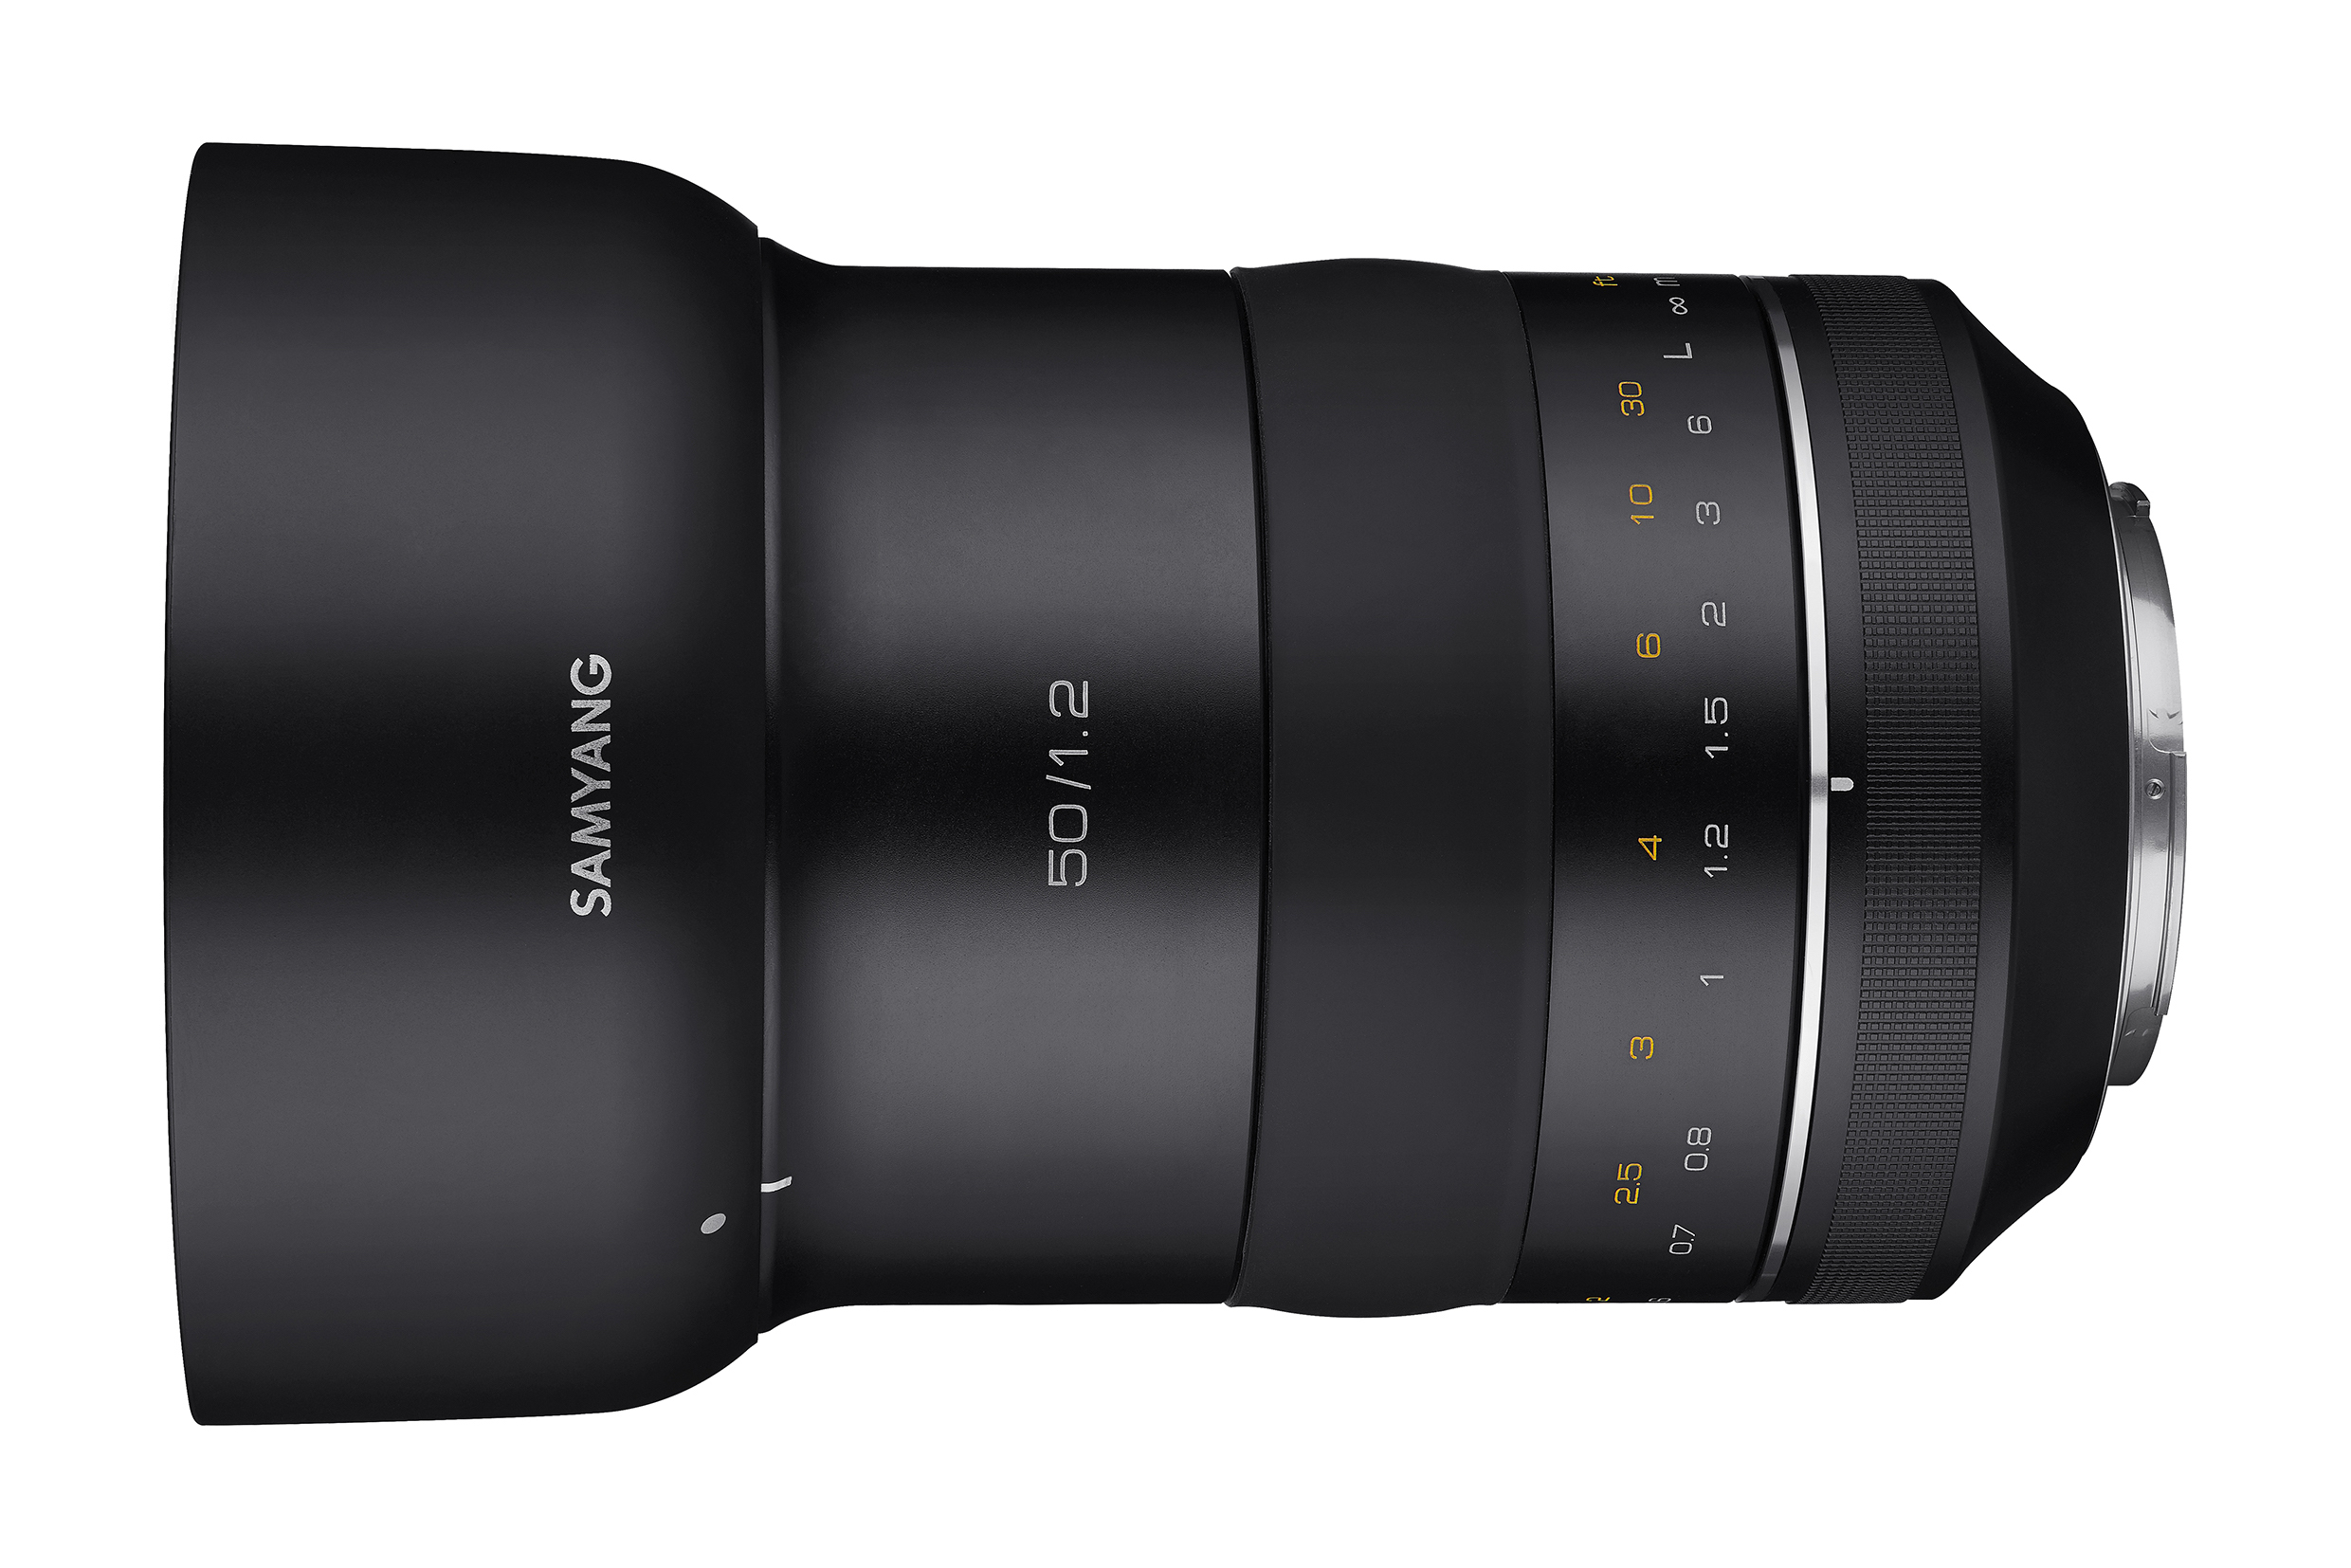 Samyang reveals new 50mm lens for Canon full-frame cameras